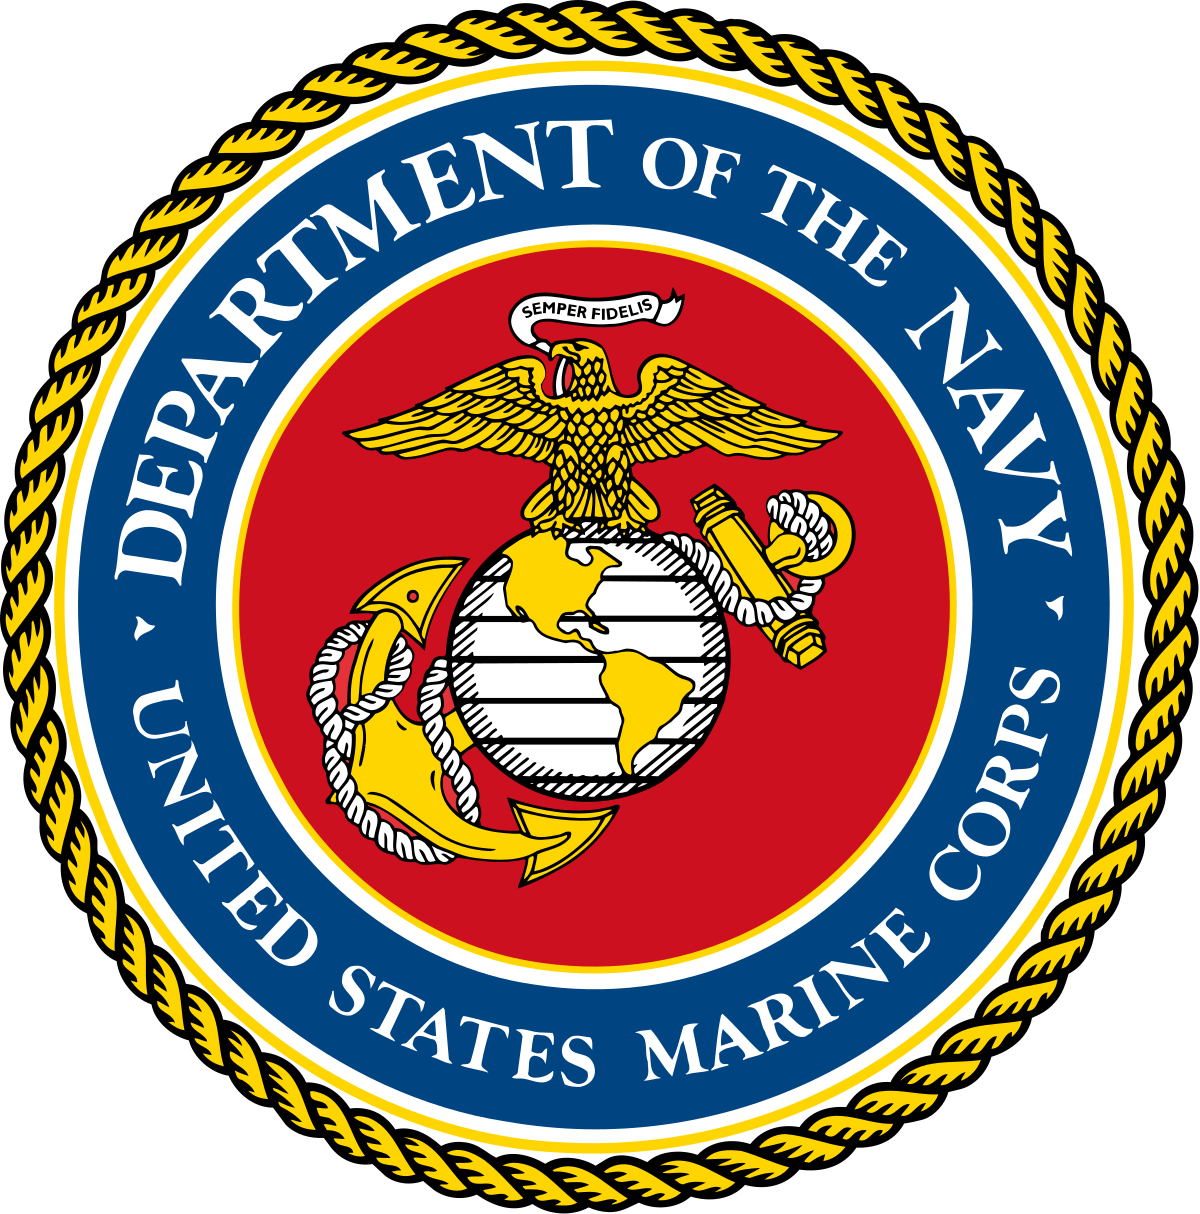 Usmc drawing emblem marine corps. Organization of the united